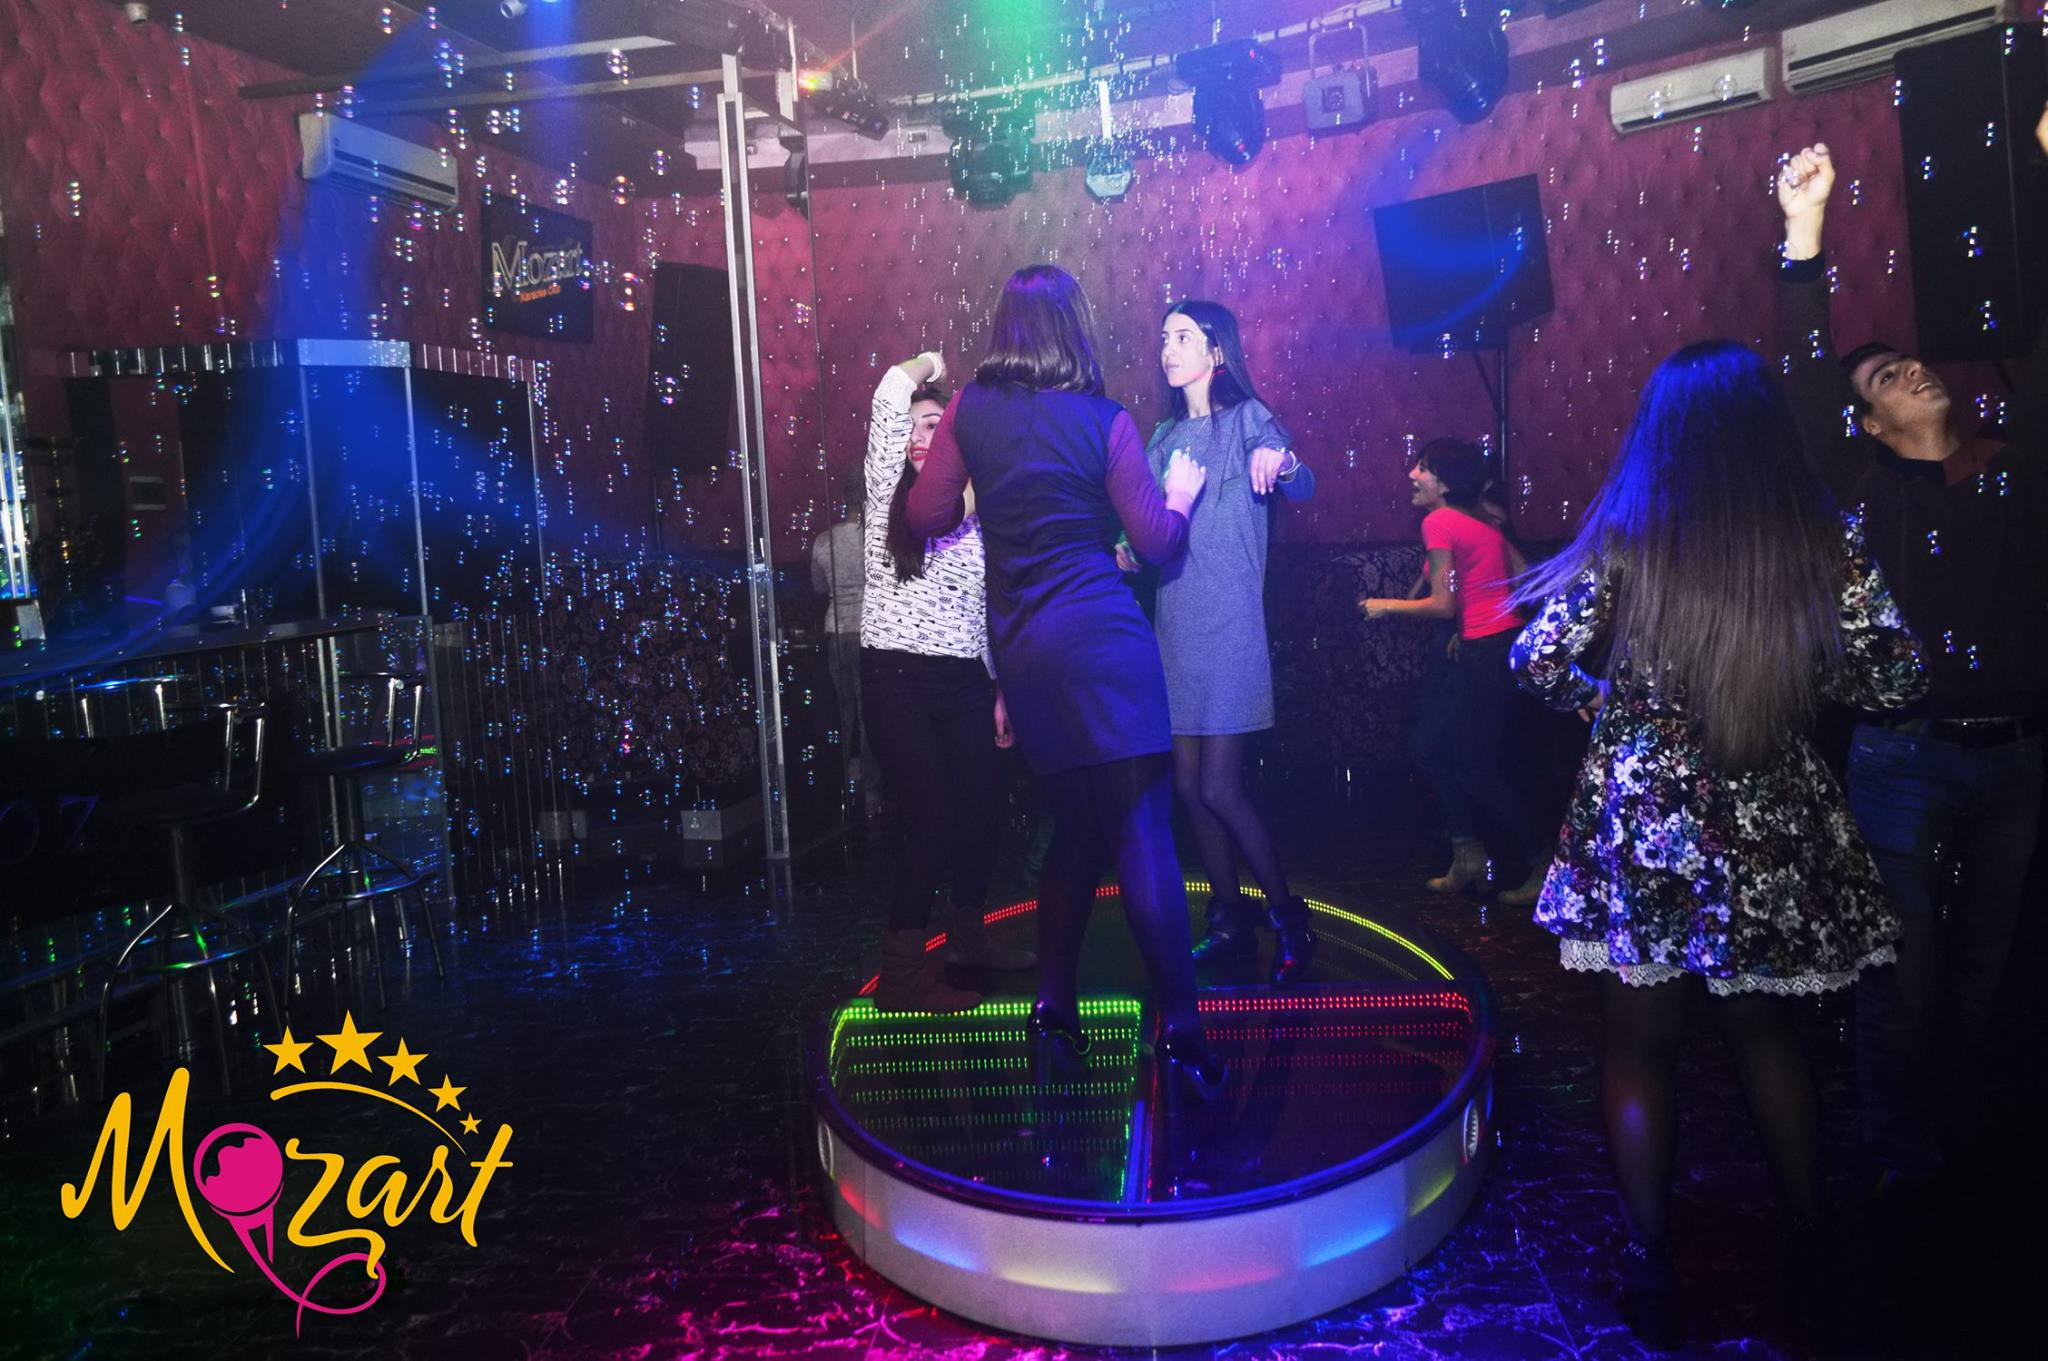 MOZART karaoke club – Best karaoke club in Armenia